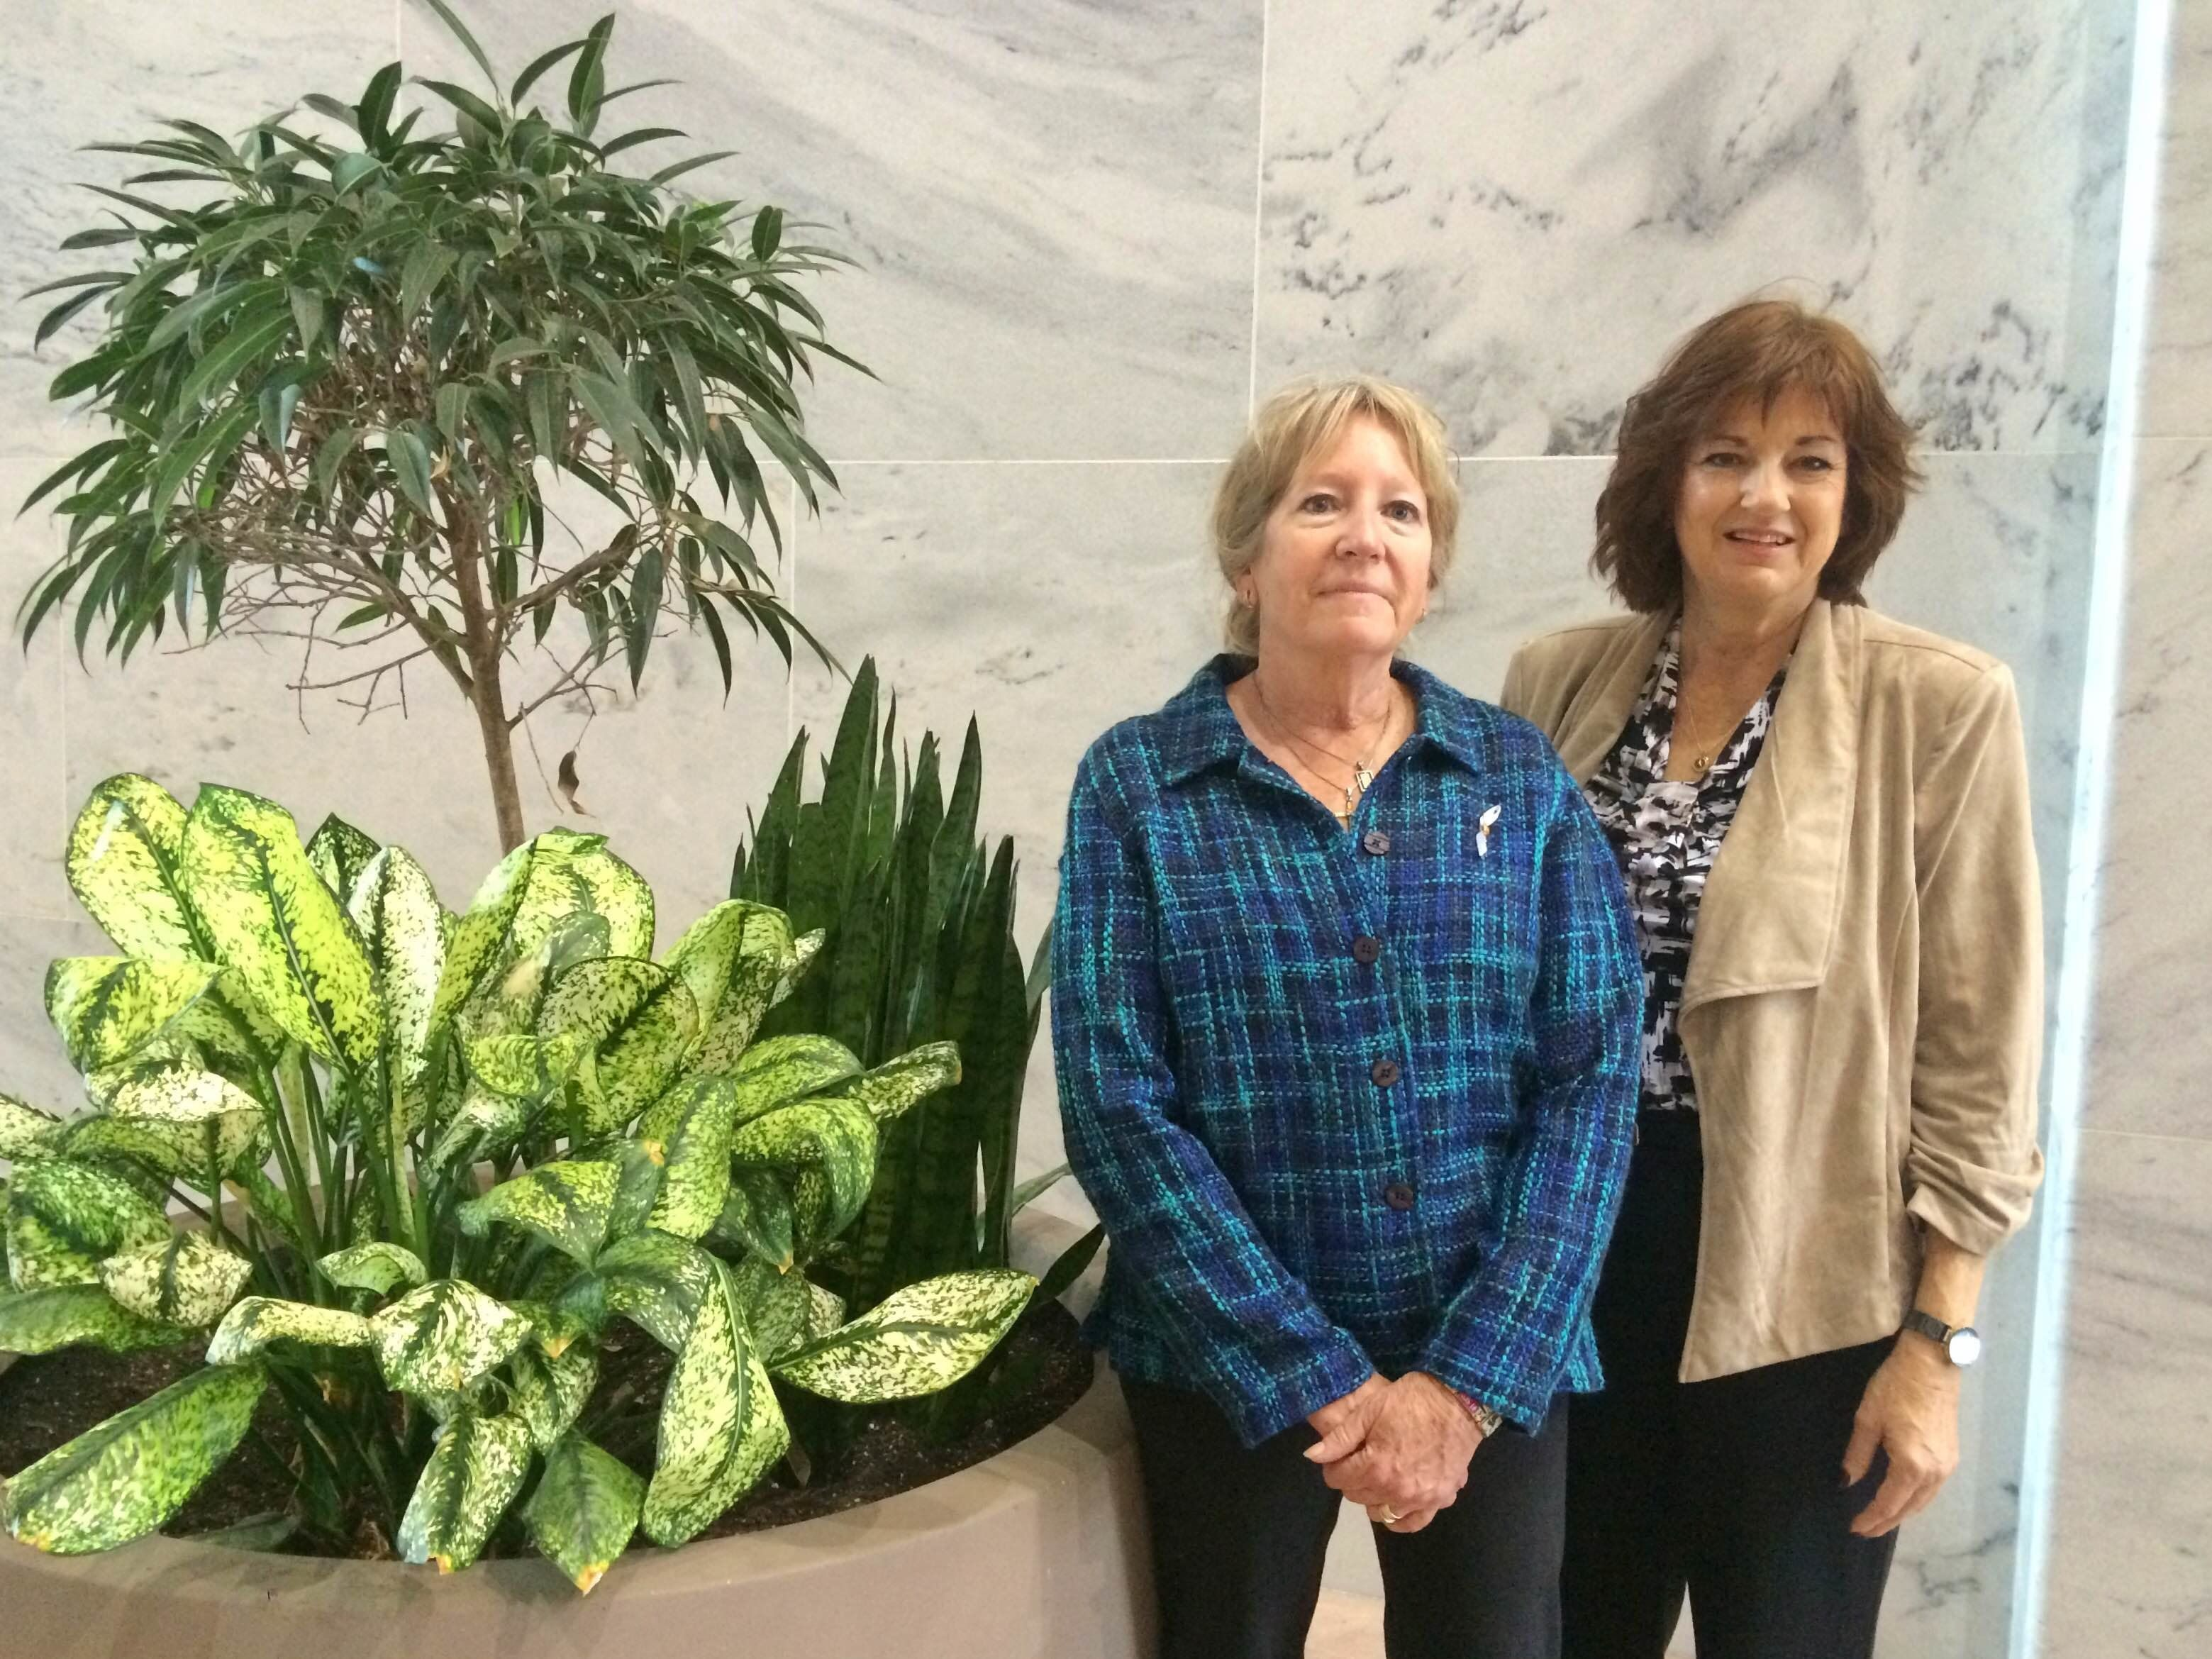 <p>Michelle DeFord and Karen Meredith, pictured in the Hart Senate Office Building, traveled to Washington, D.C. to push lawmakers to support the Iran deal. </p>